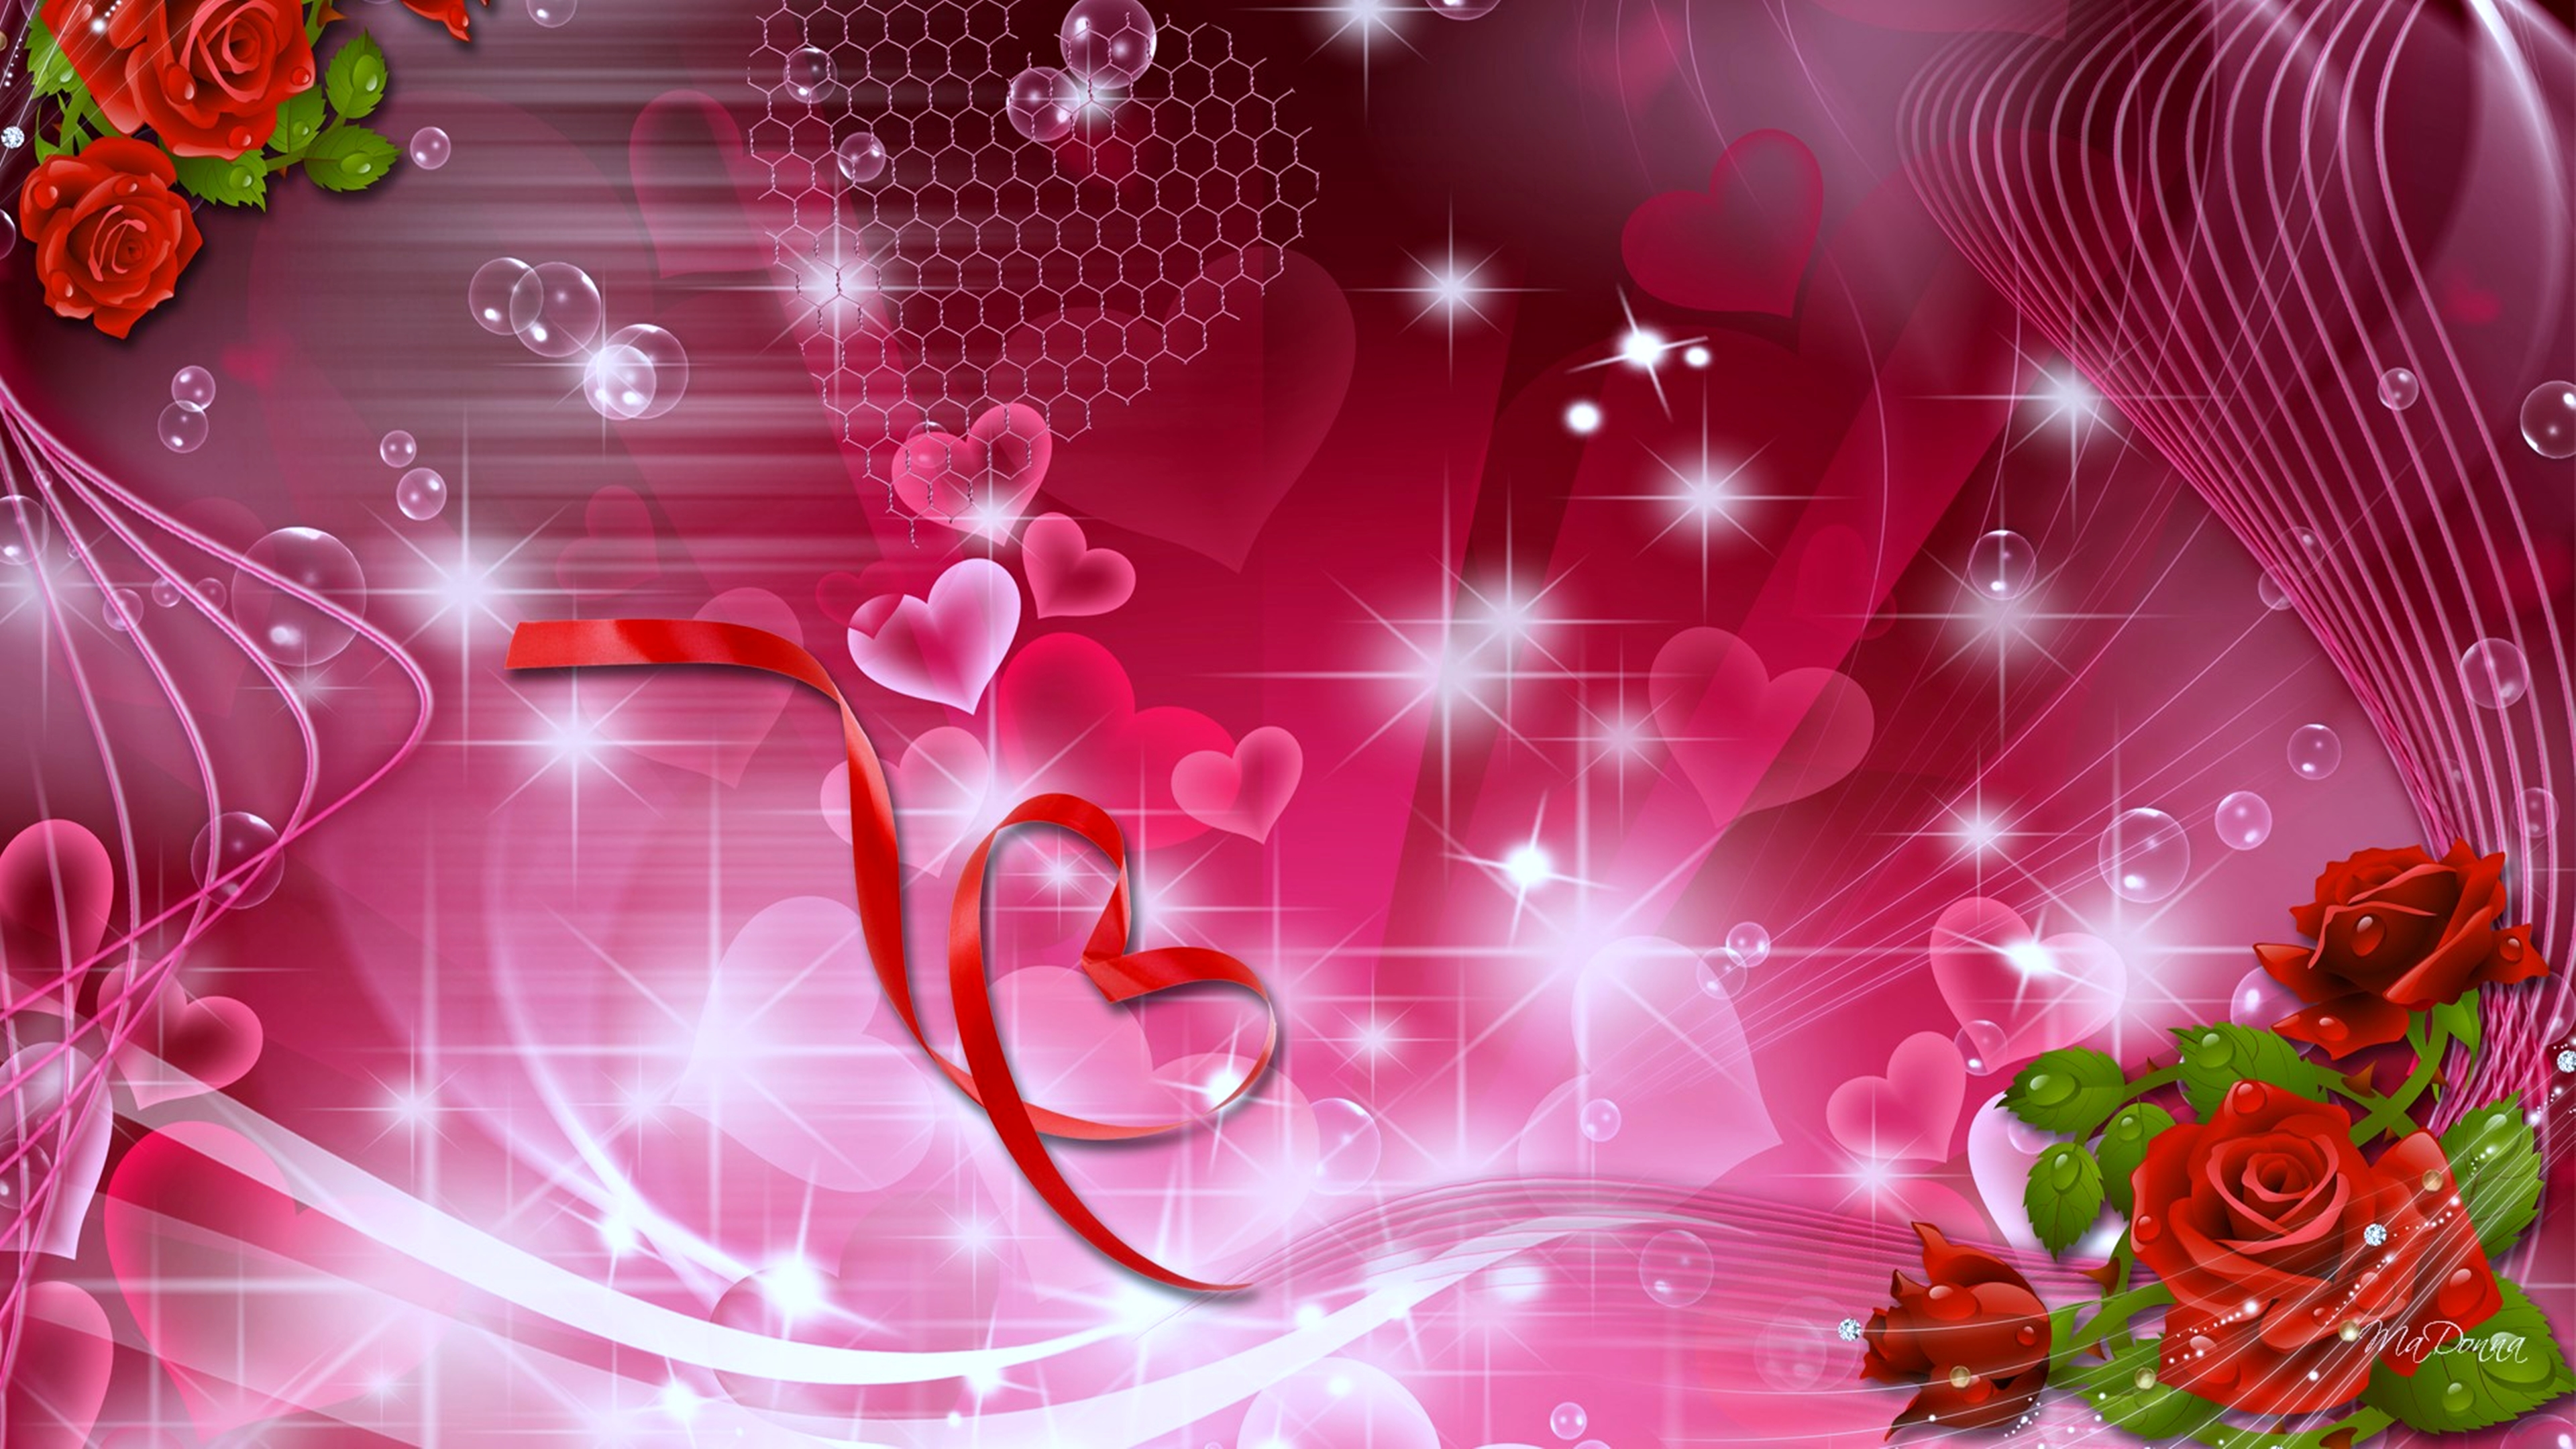 Love Wallpaper Ultra Hd : Love Backgrounds, Pictures, Images